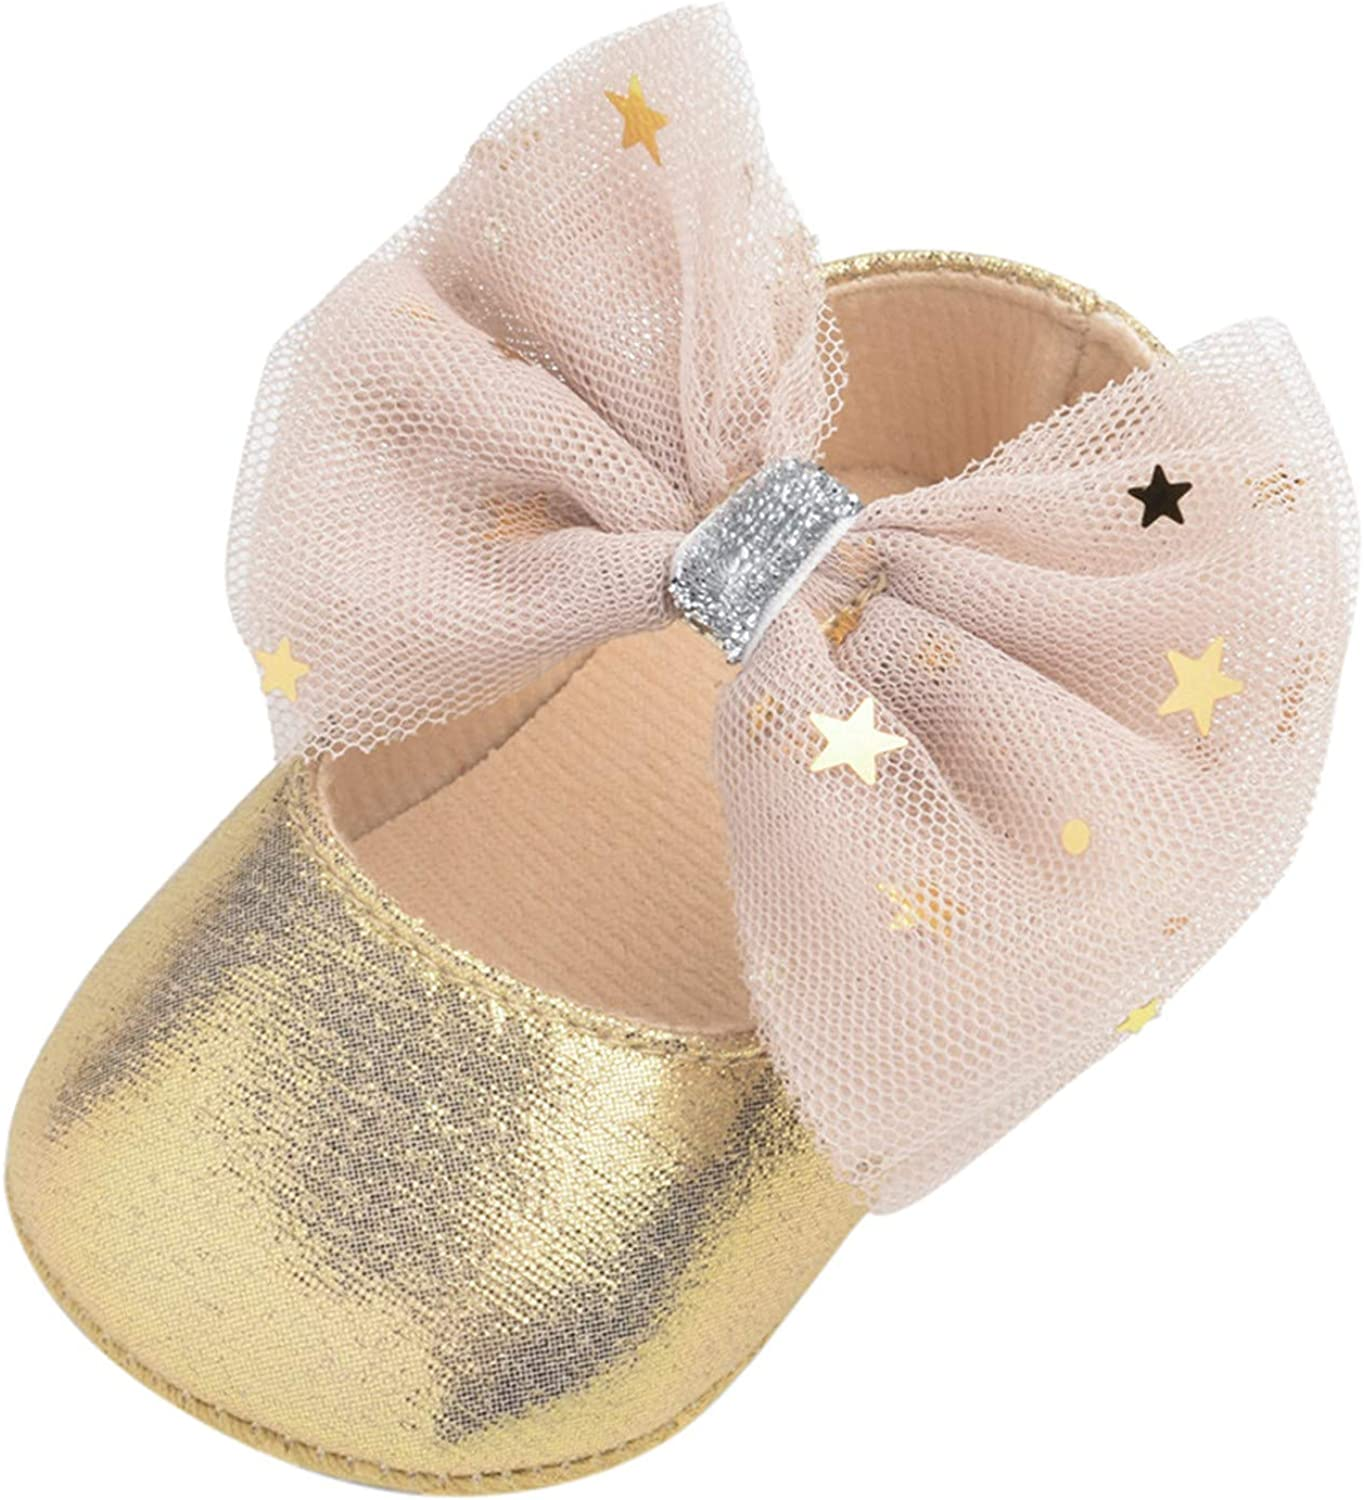 FIN86 0-18M Baby specialty shop Shoes Mary Janes Rubber Sole Firs Flat Bowknot Max 43% OFF